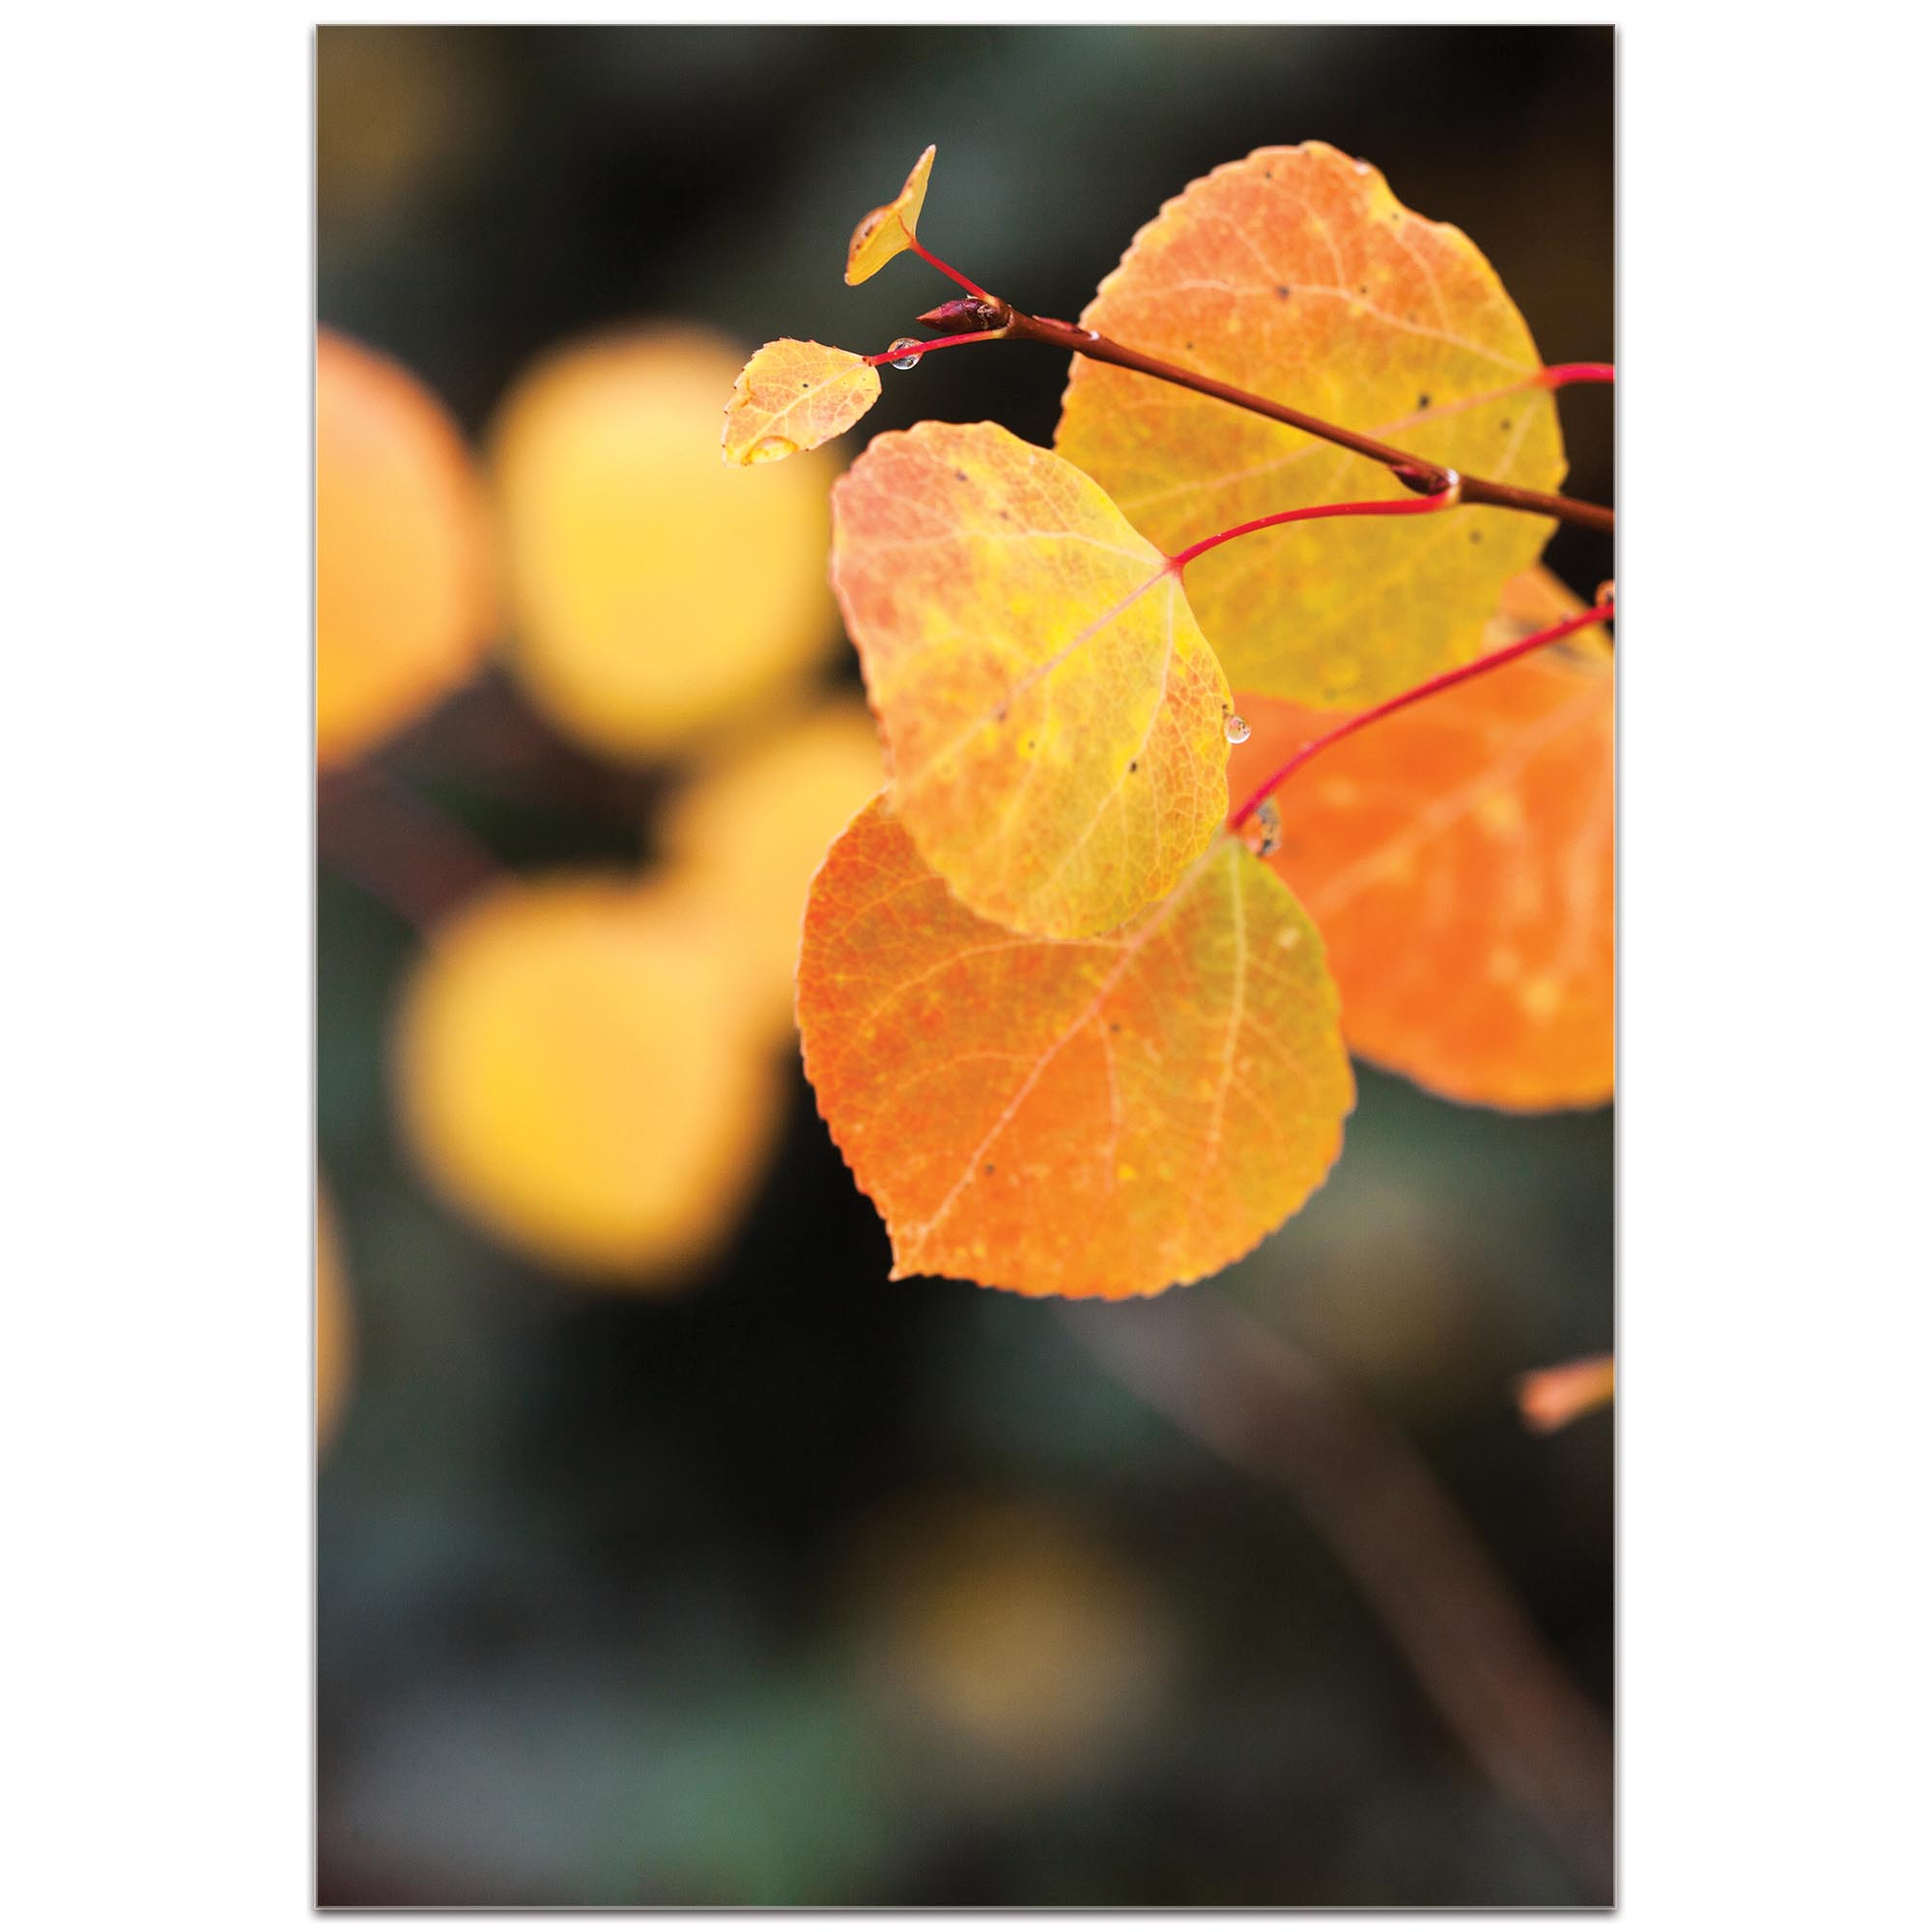 Nature Photography 'Changing Leaves' - Autumn Leaves Art on Metal or Plexiglass - Image 2